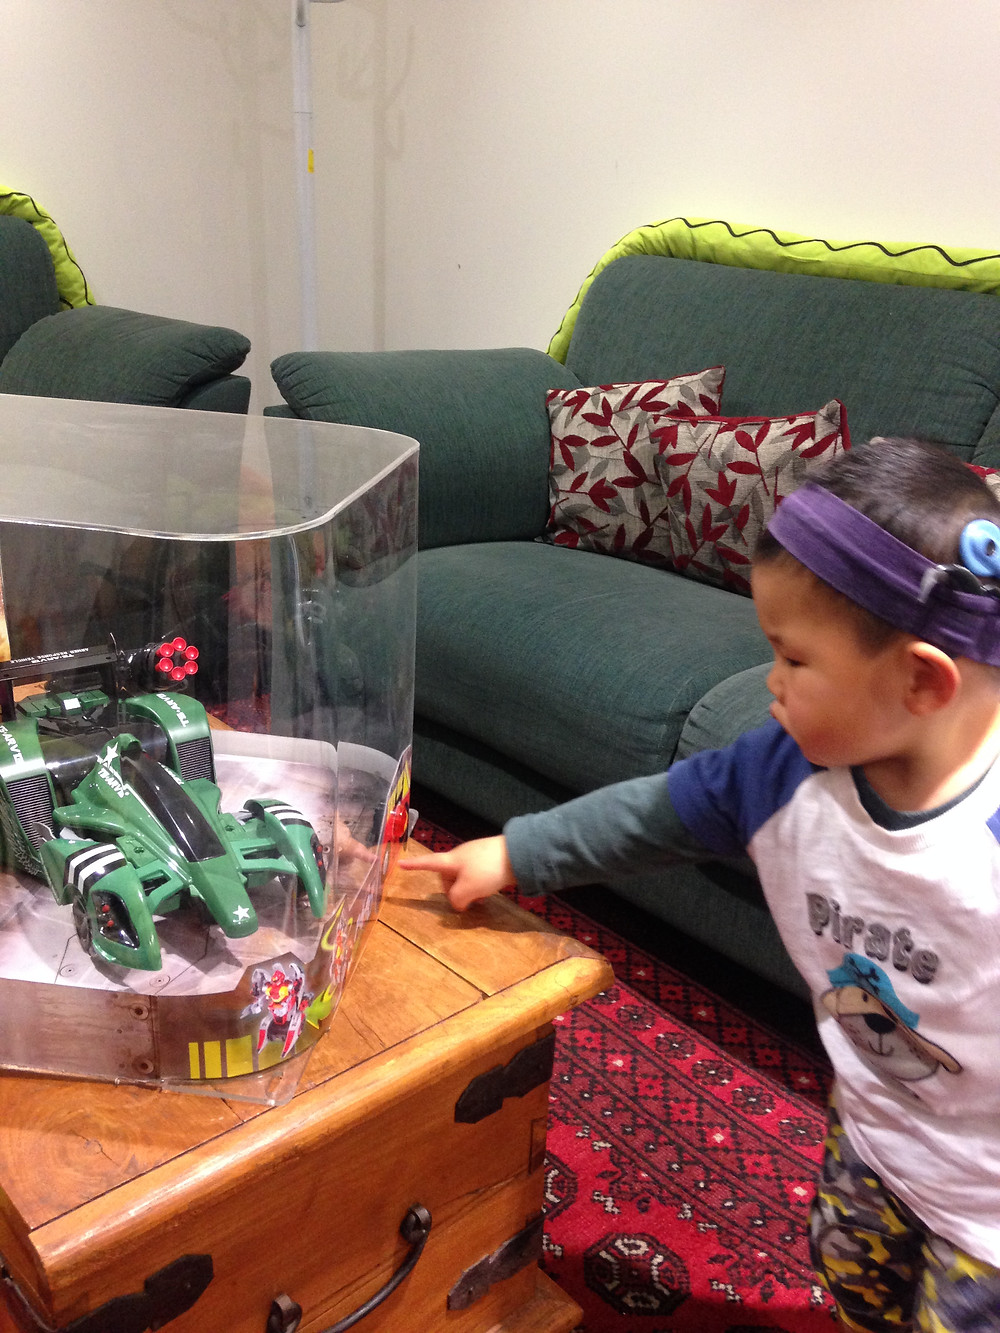 Hearing House client Owen loved playing with the display toy robot that was donated to us by The Warehouse Sylvia Park